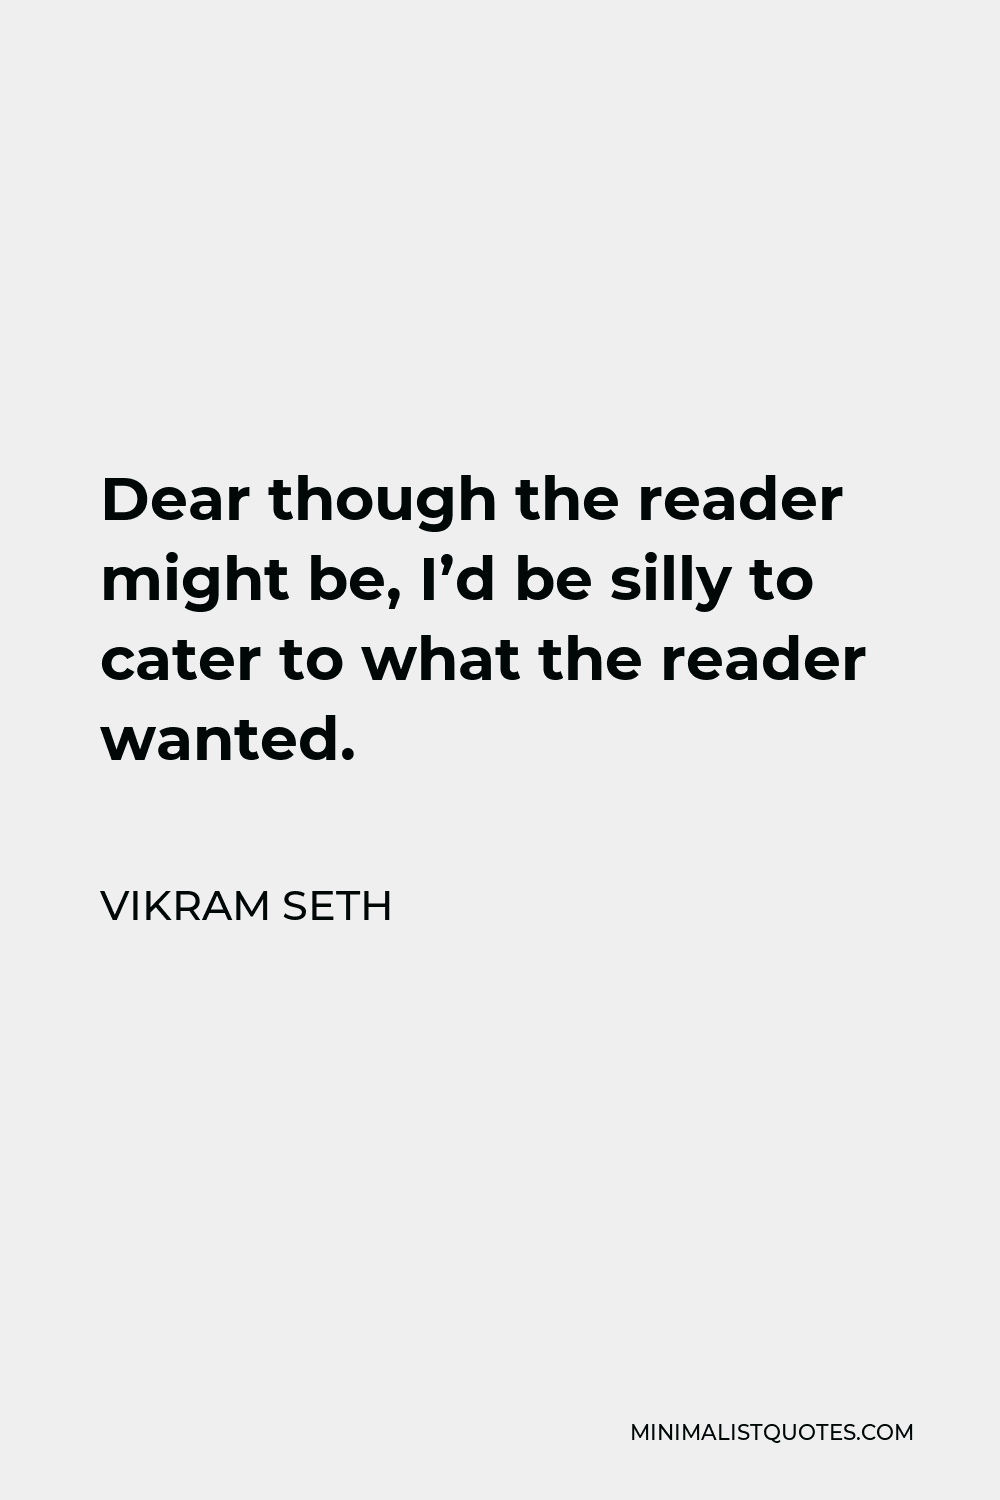 Vikram Seth Quote - Dear though the reader might be, I'd be silly to cater to what the reader wanted.